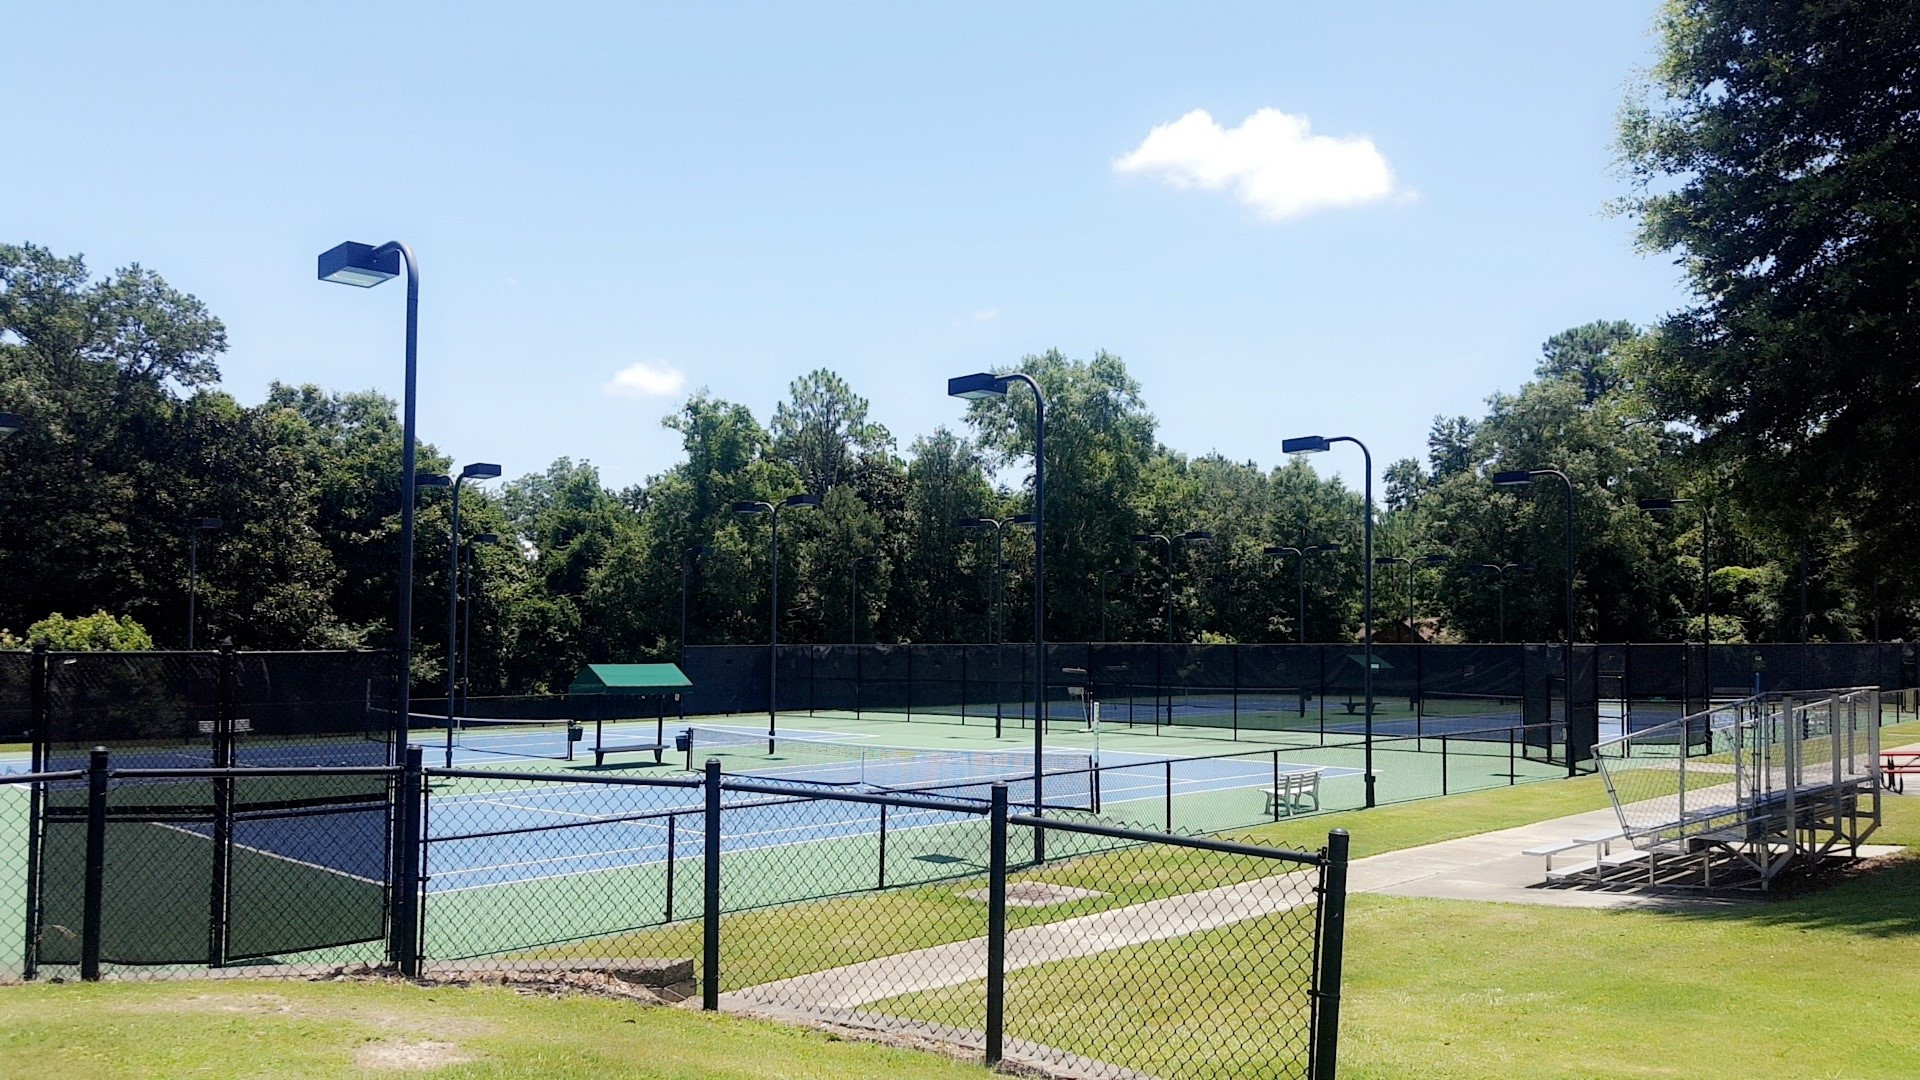 picture of empty tennis courts at spirit park